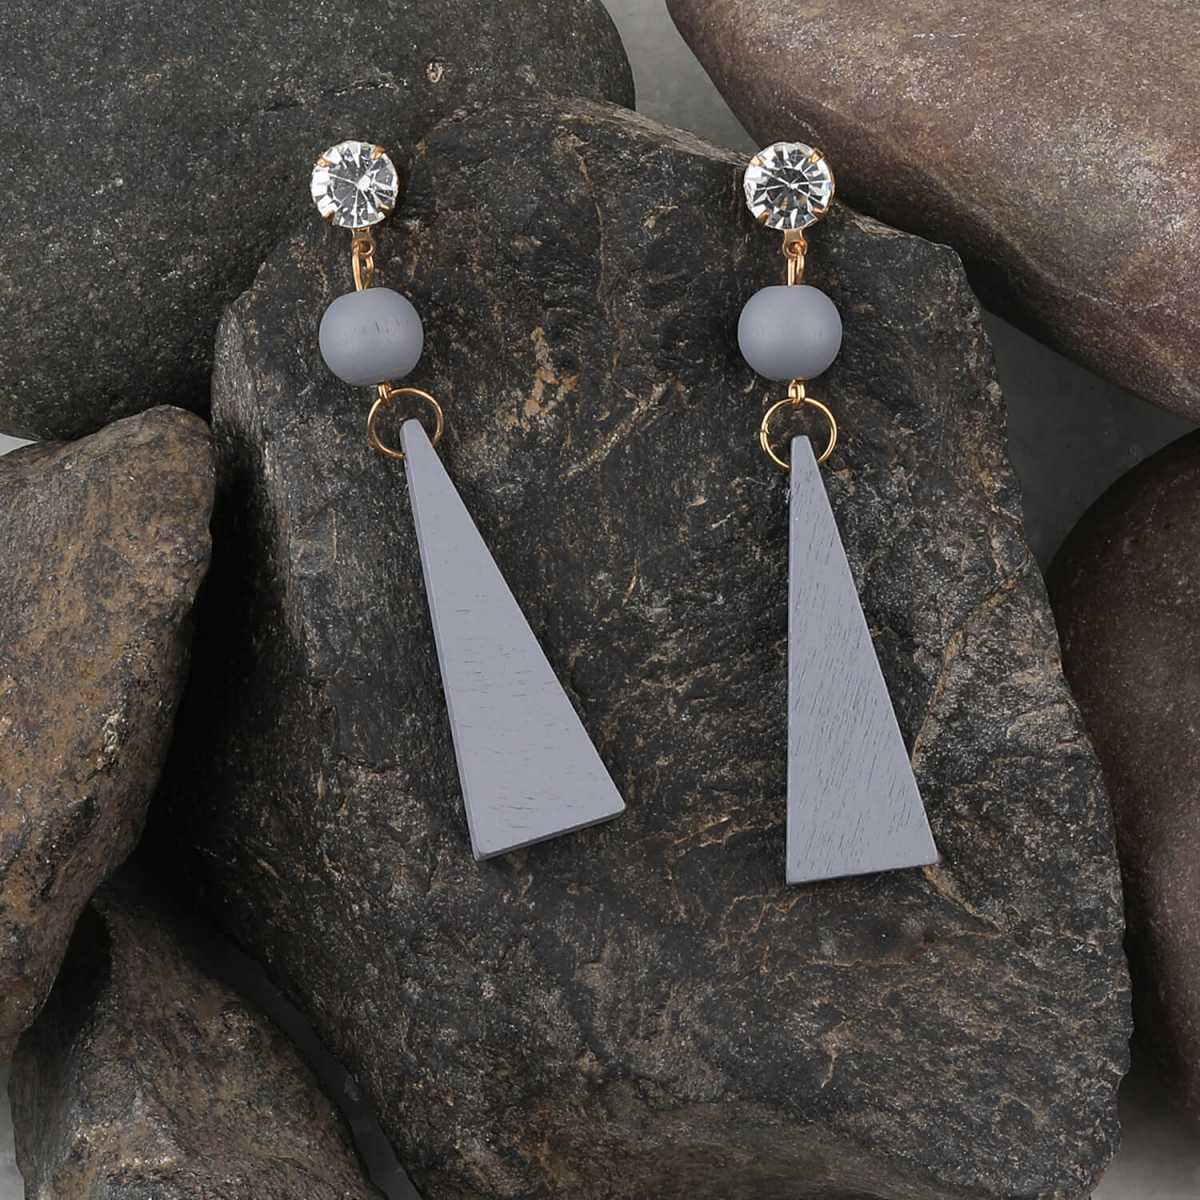 SILVER SHINE Antique Diamond Grey Wooden Dangler Earrings Perfect and Different Look for women girl.